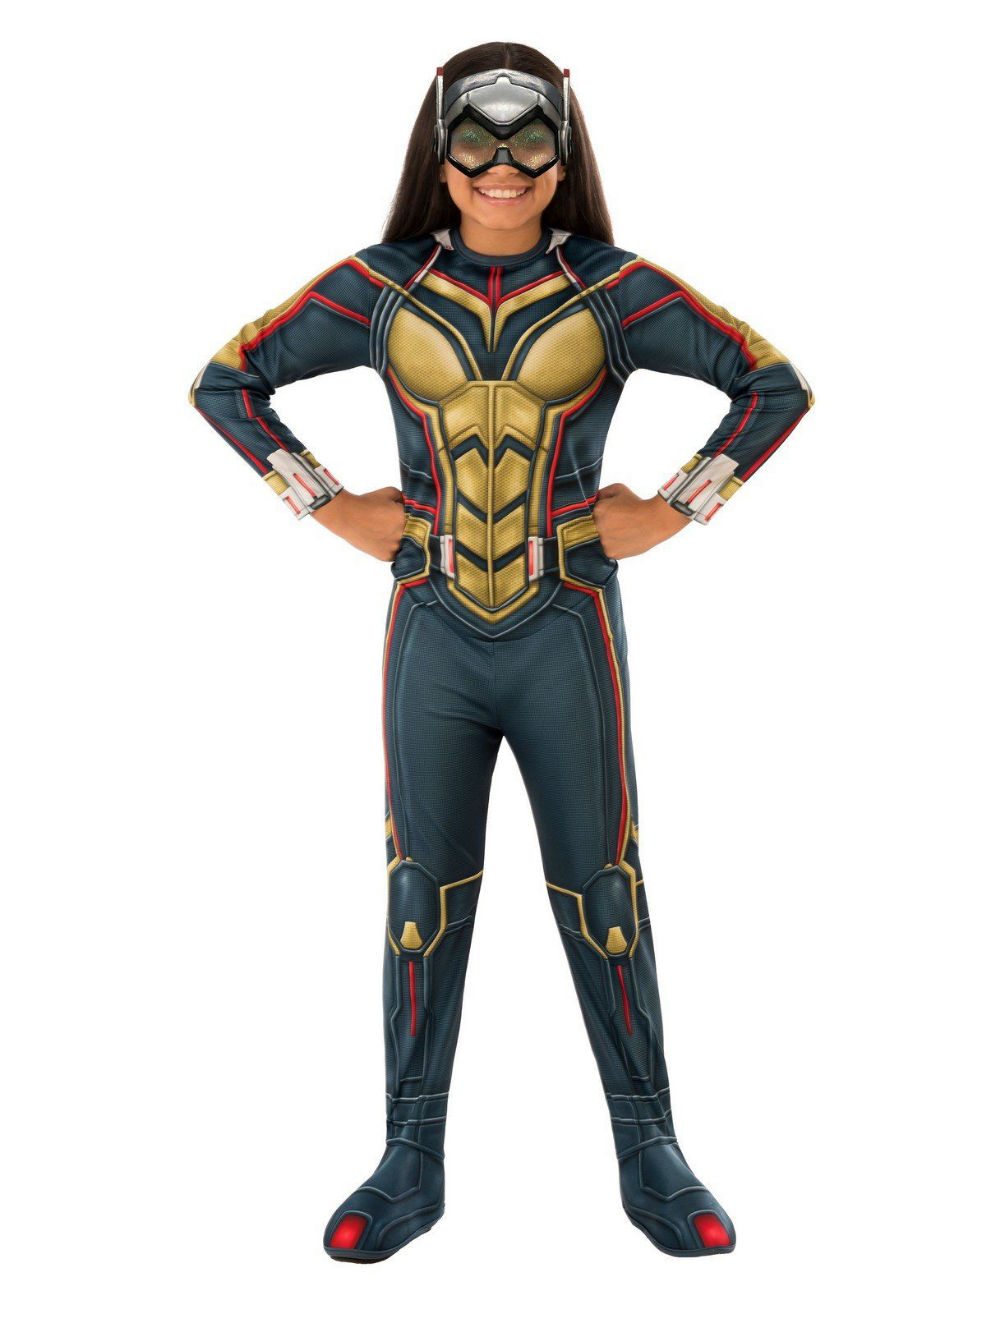 Wasp Ant-Man Marvel Superhero Avengers Fancy Dress Up Halloween Child Costume